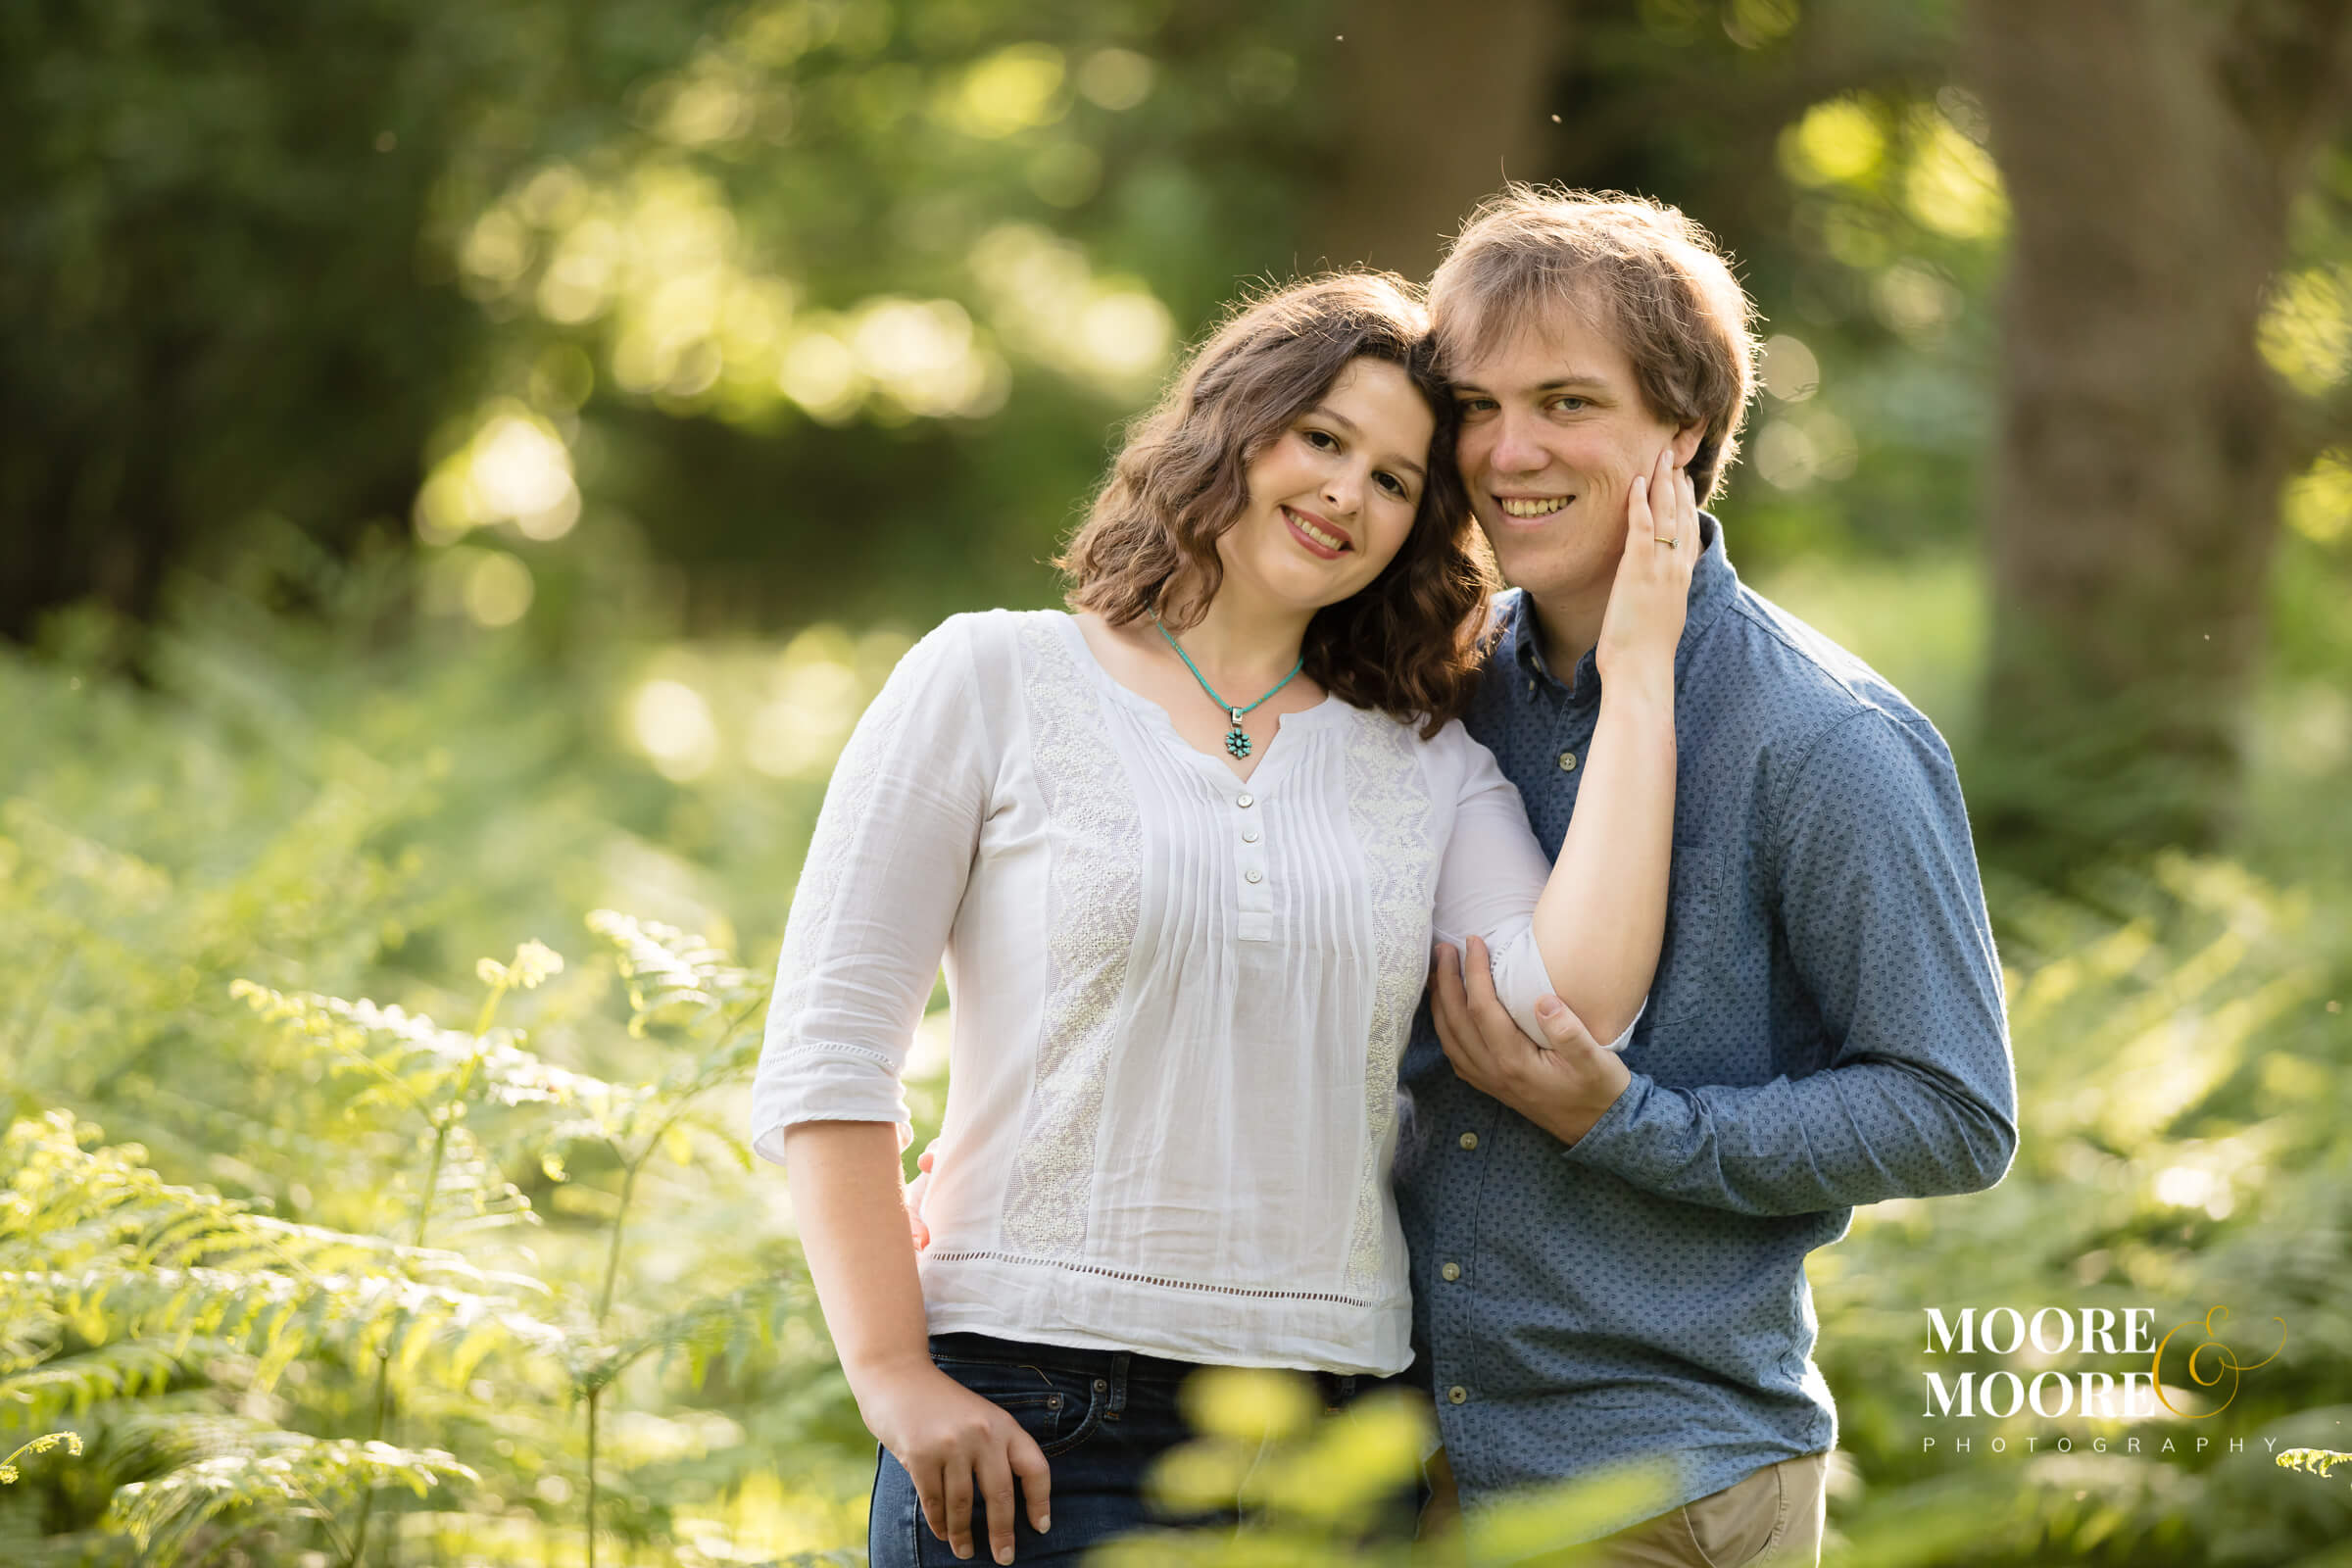 romantic sunset photo shoot - pre-wedding photography by moore&moore, Hampshire